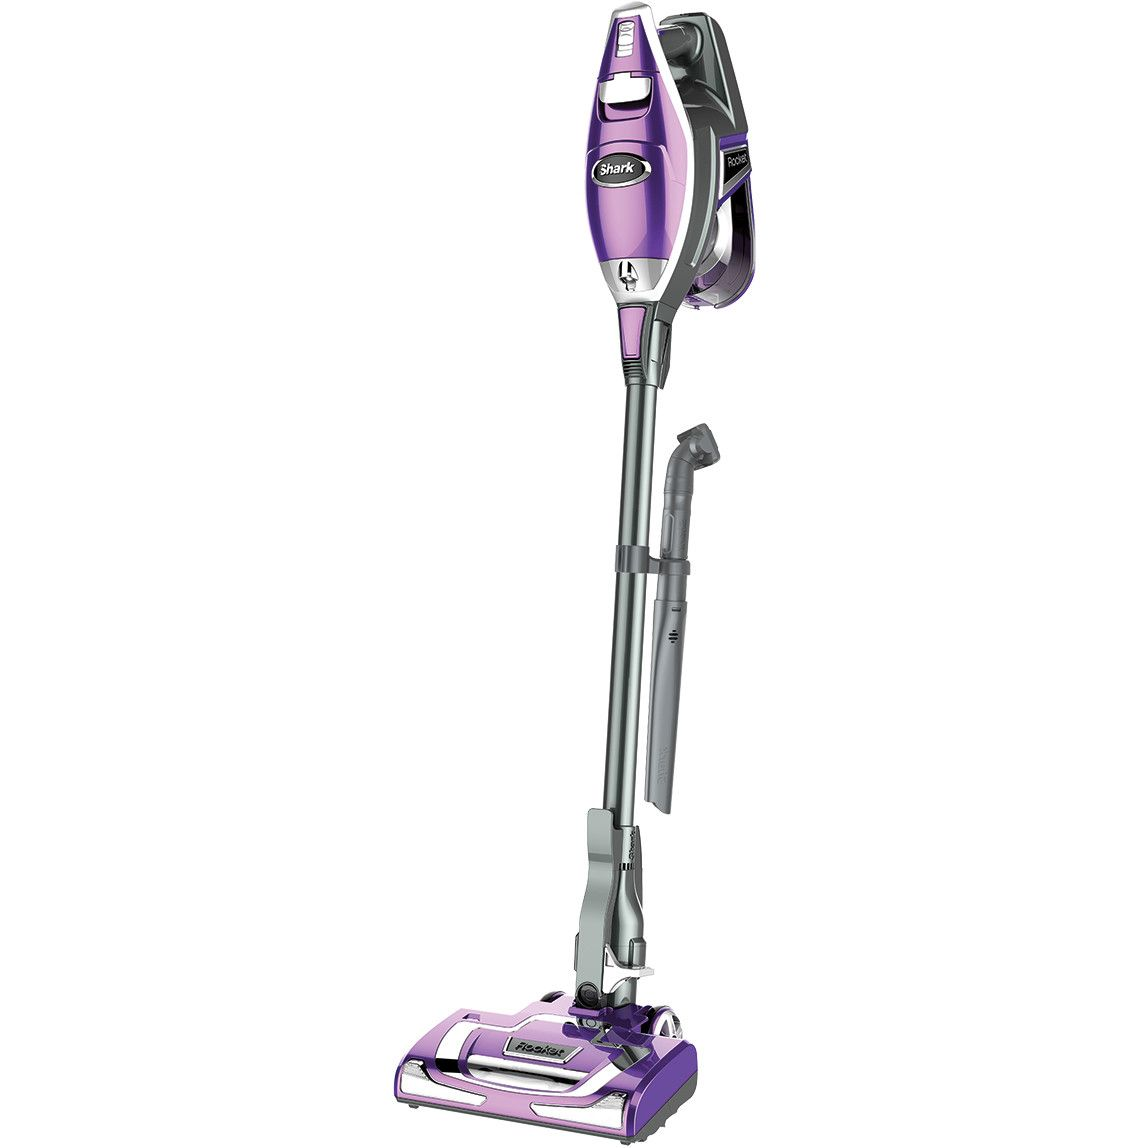 The Shark Rocket Complete Lightweight Vacuum W Duoclean Technology Has Completely Reinvented How Vacuums Work No Vacuums Vacuum Cleaner Best Cleaning Mops